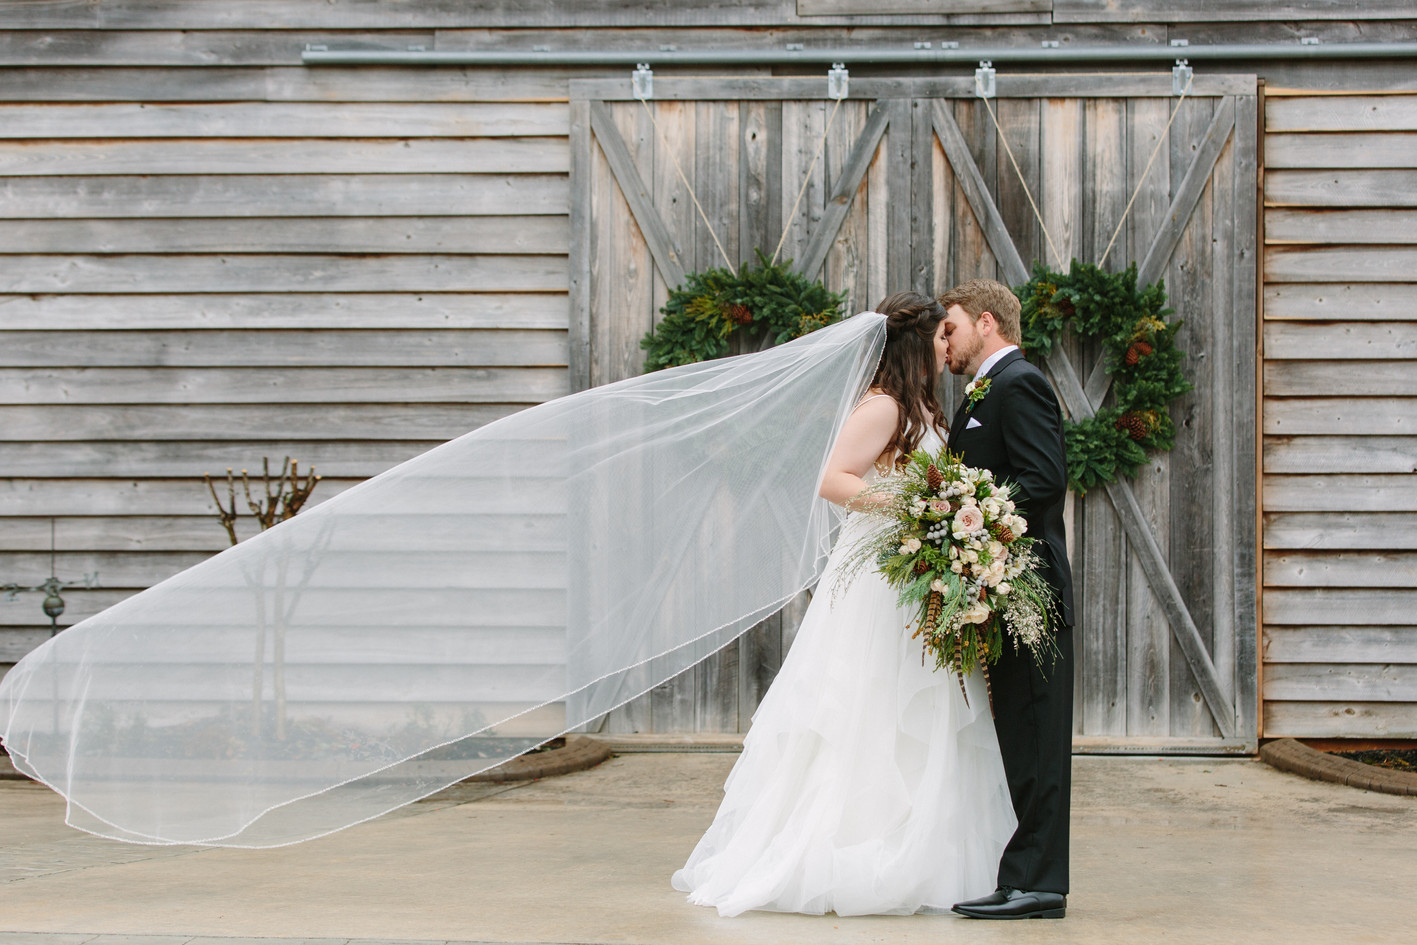 Kiss in front of grand barn